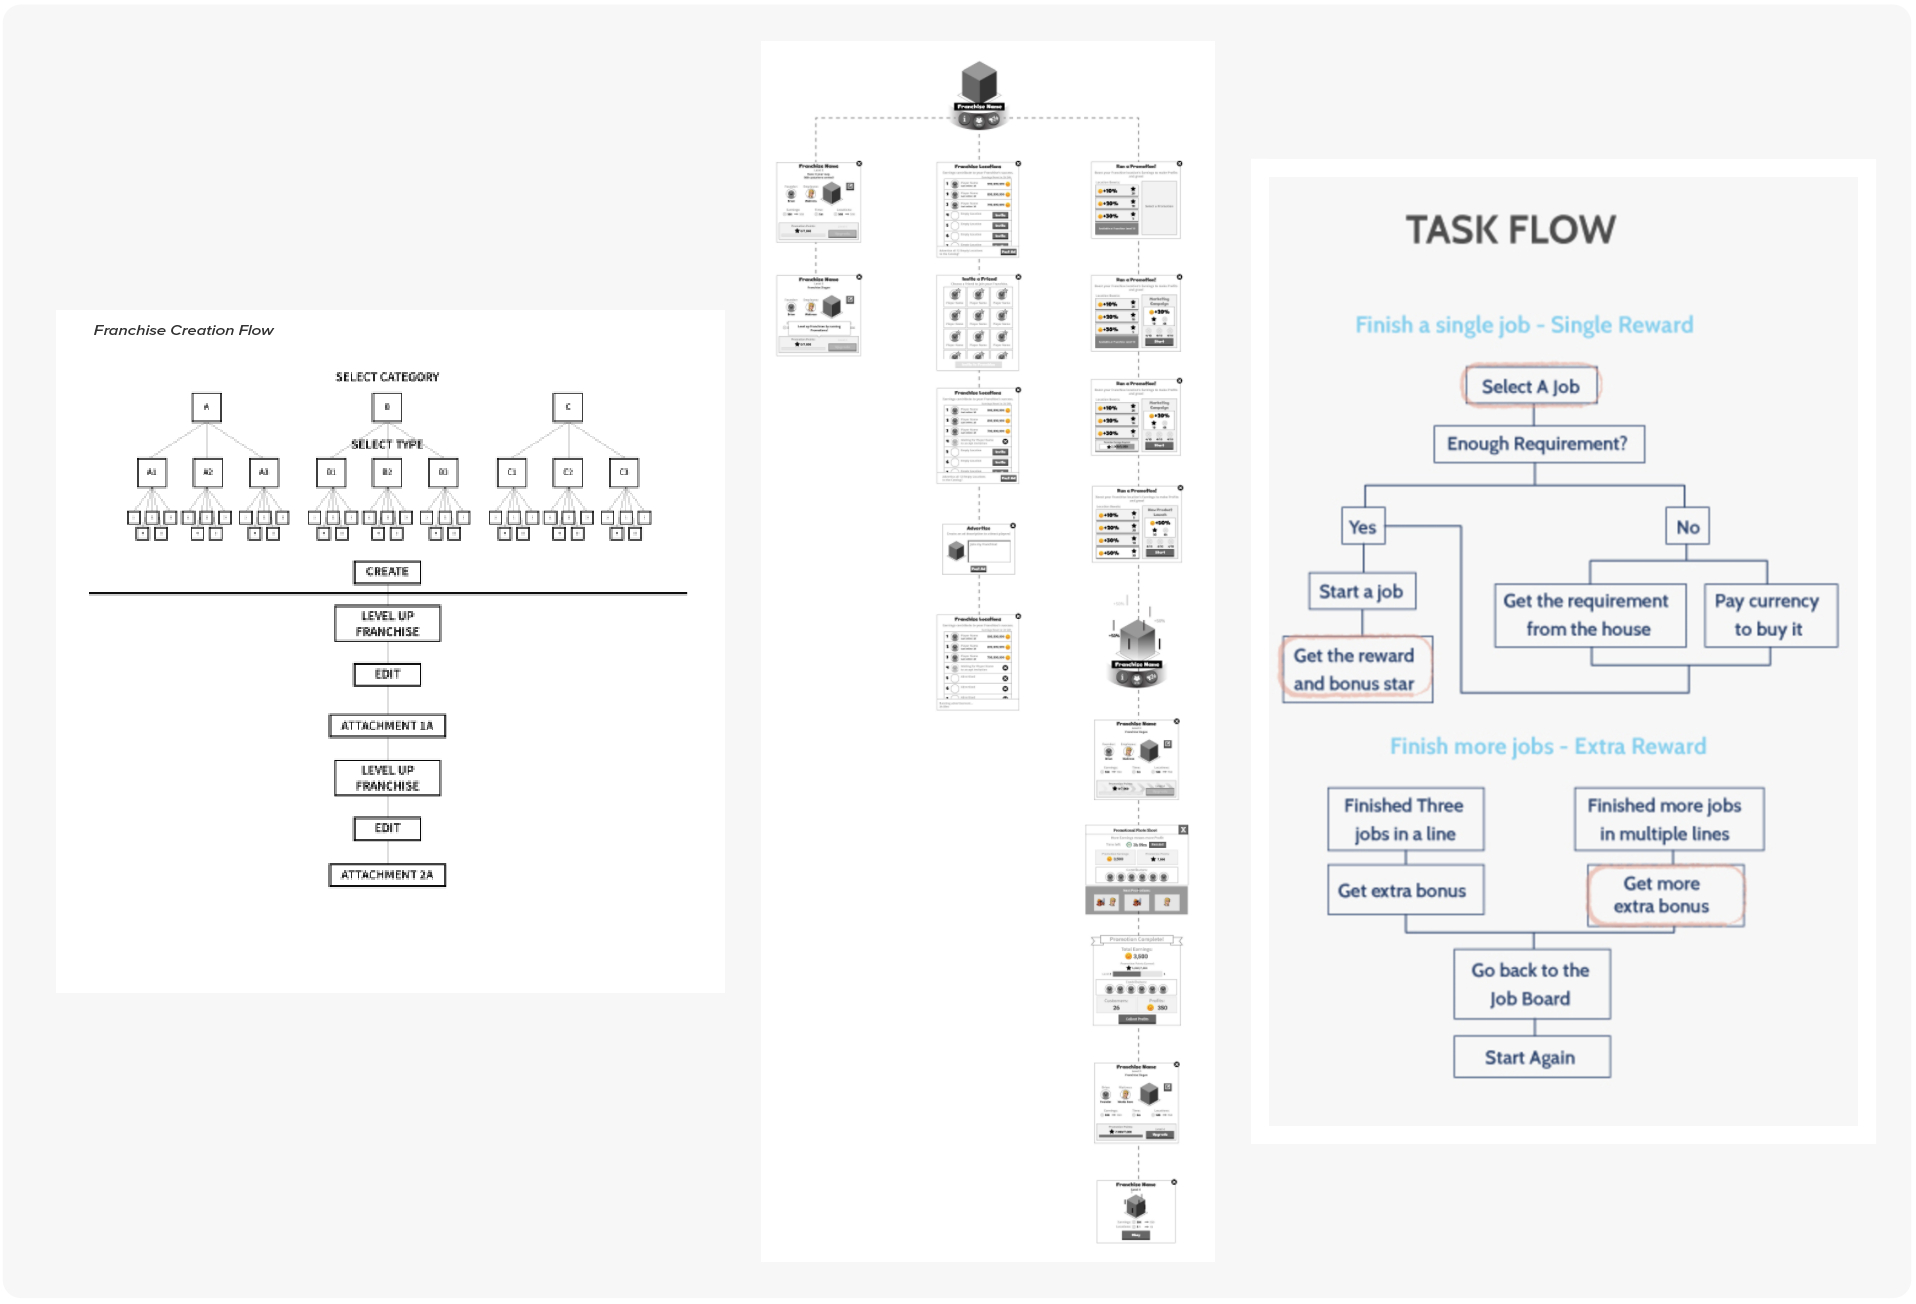 User task flows help communicate complex game systems and user experiences, and identify potential gaps and deficiencies before code is written.